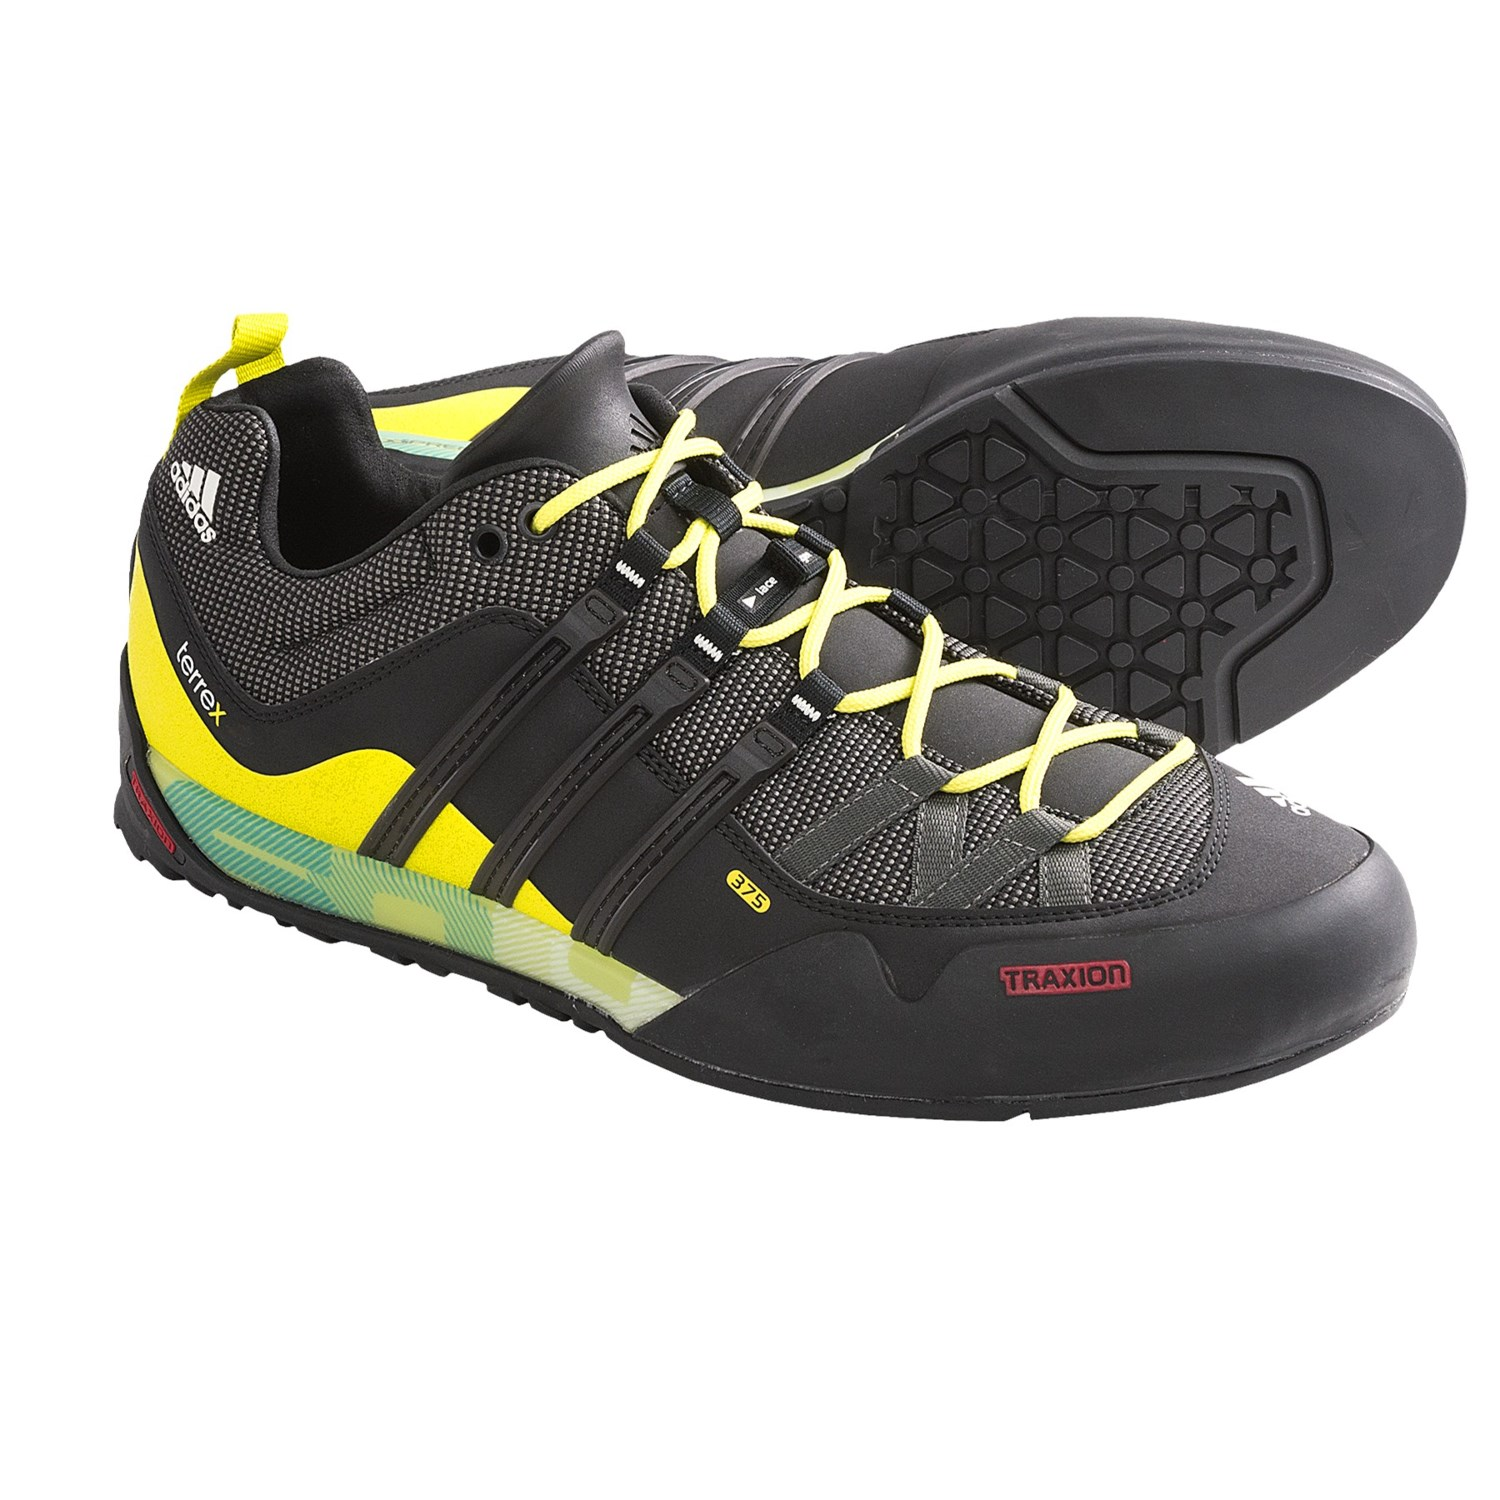 Adidas Outdoor Terrex Solo Approach Shoes (For Men) 5778N ...